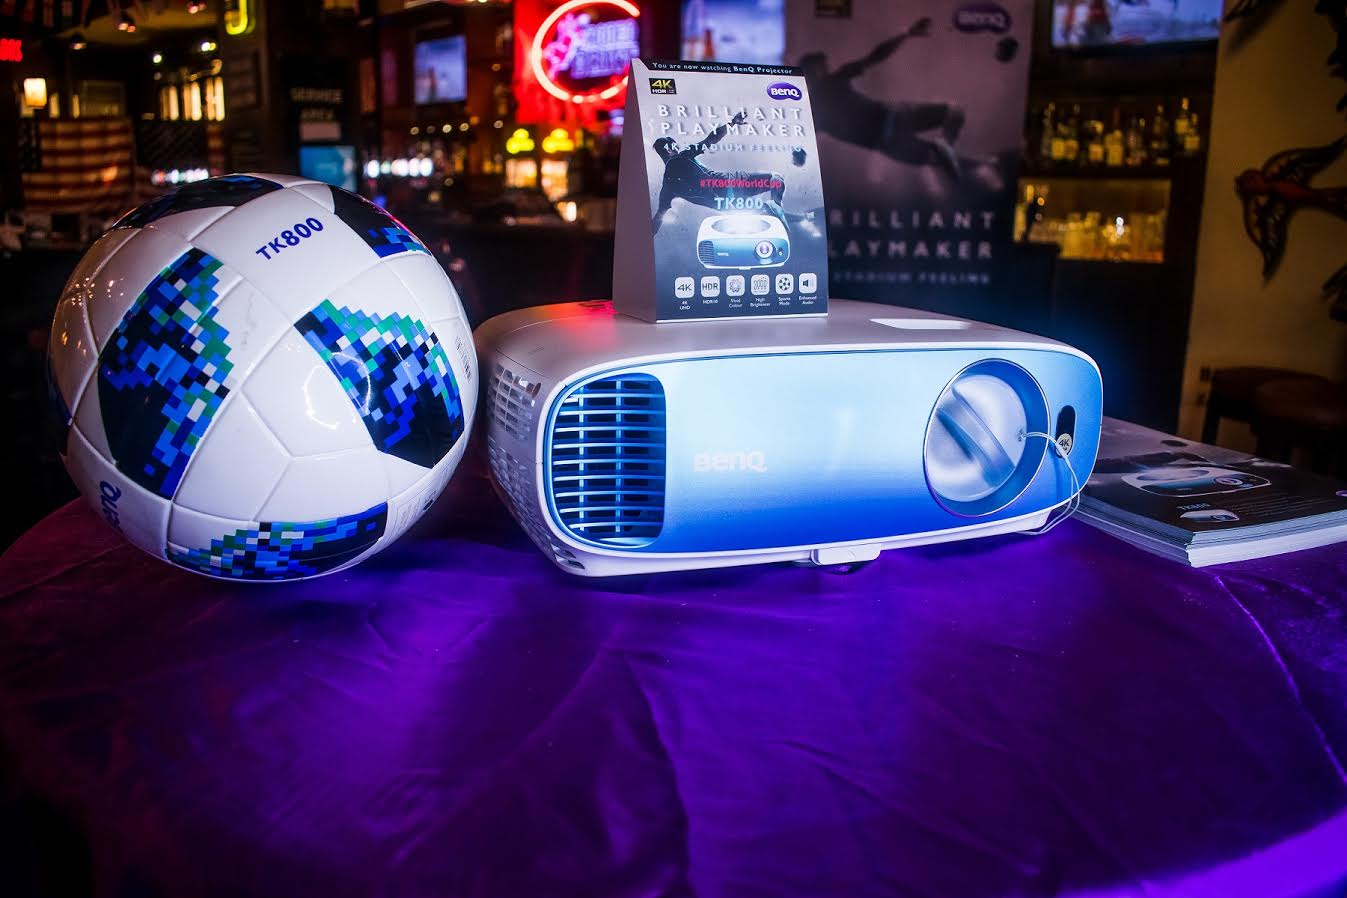 Benq Shwacase TK800 Projector with world cup matches